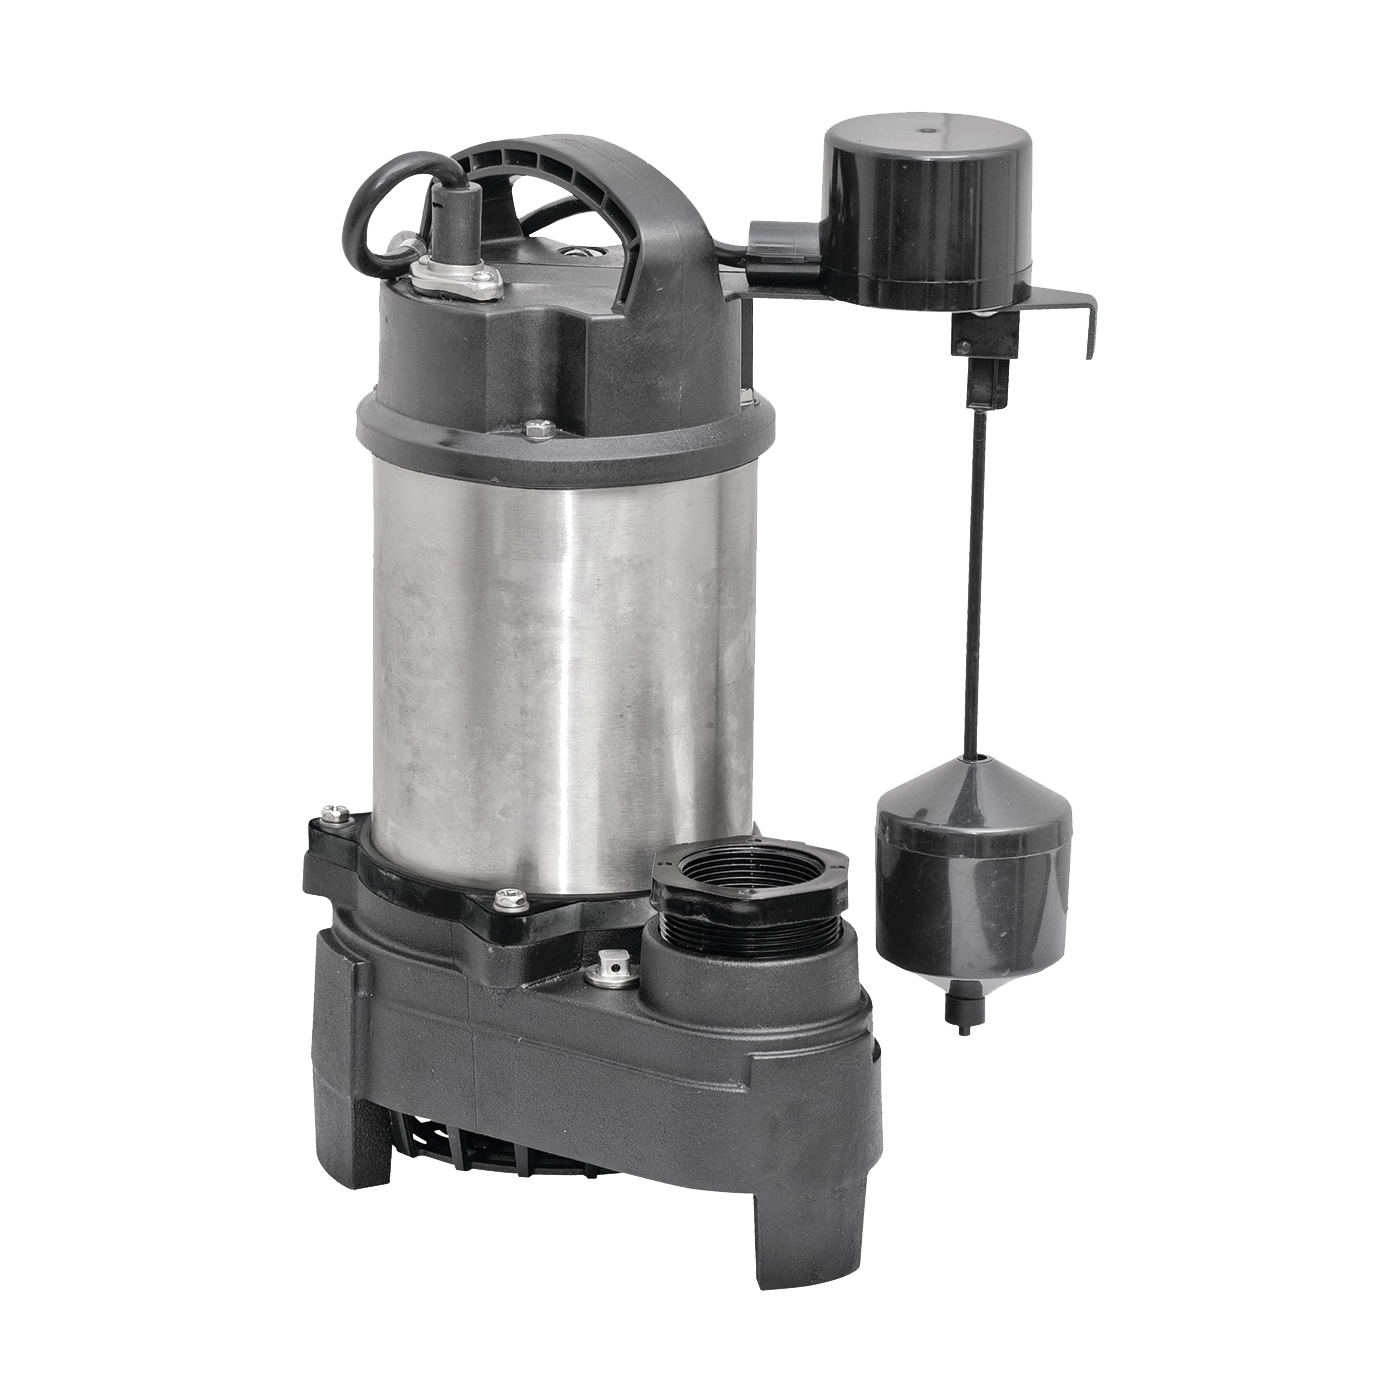 Picture of SUPERIOR PUMP 92751 Sump Pump, 7.5 A, 120 V, 0.75 hp, 2 in Outlet, 80 gpm, Iron/Stainless Steel